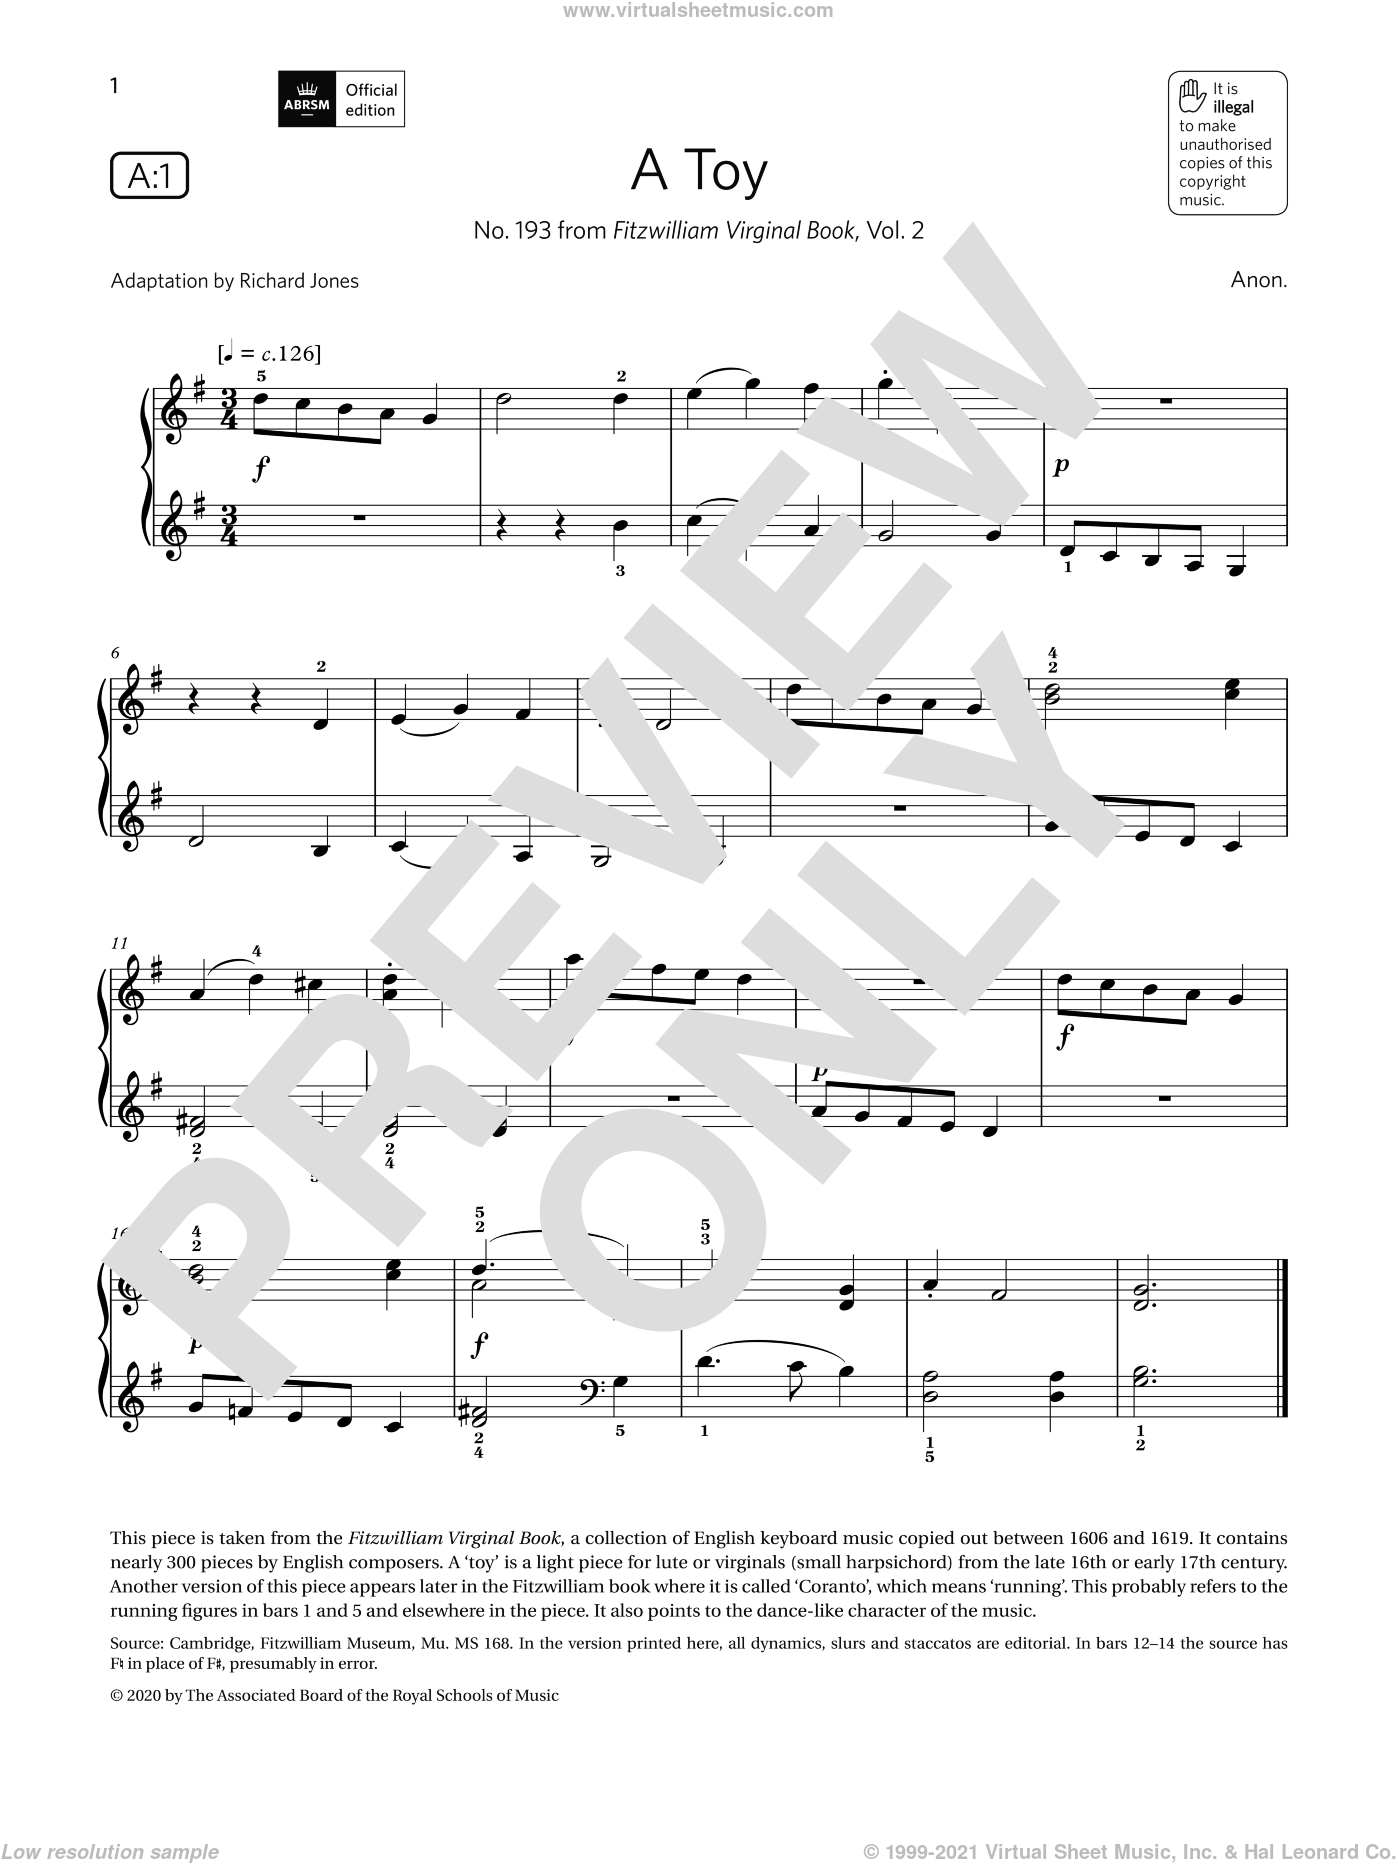 A Toy (Grade 1, list A1, from the ABRSM Piano Syllabus 2021 and 2022) sheet music for piano solo by Anon, classical score, intermediate skill level